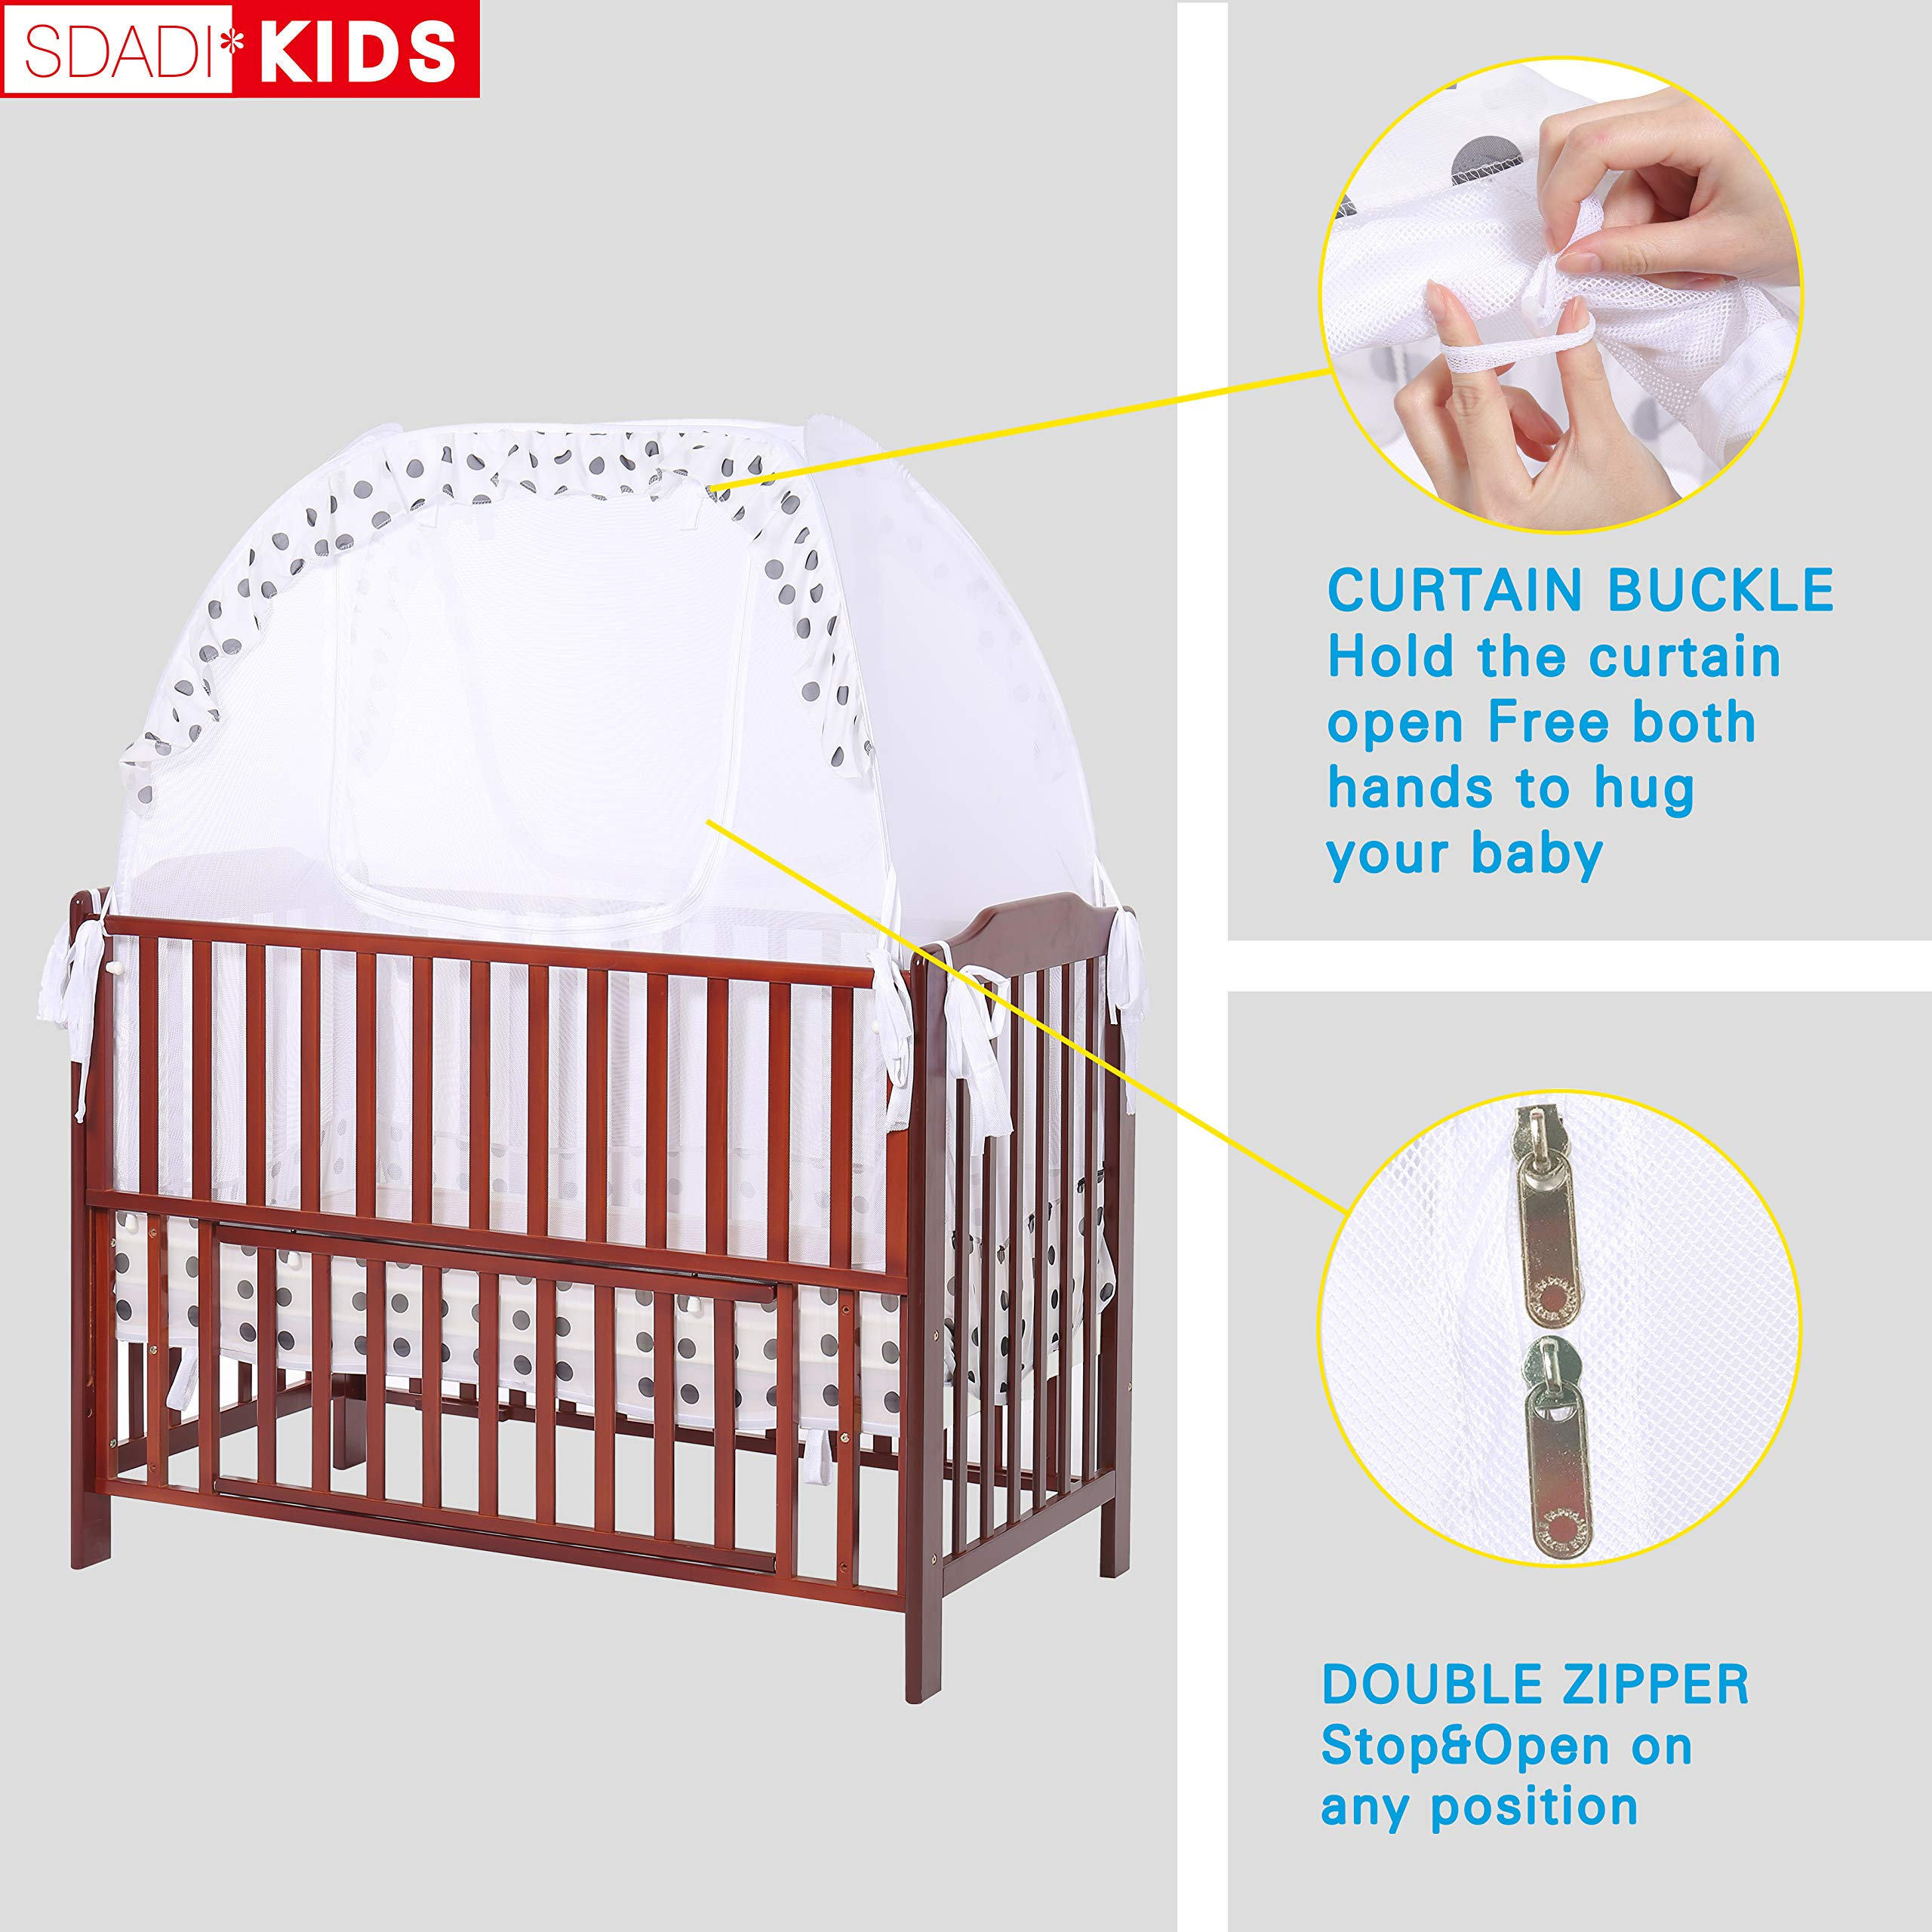 SDADI Baby Crib Safety Tent Pop Up Mosquito Net with Baby Monitor Hang Ribbon,Toddler Bed Canopy Netting Cover |Dots WLCN01D by SDADI (Image #4)